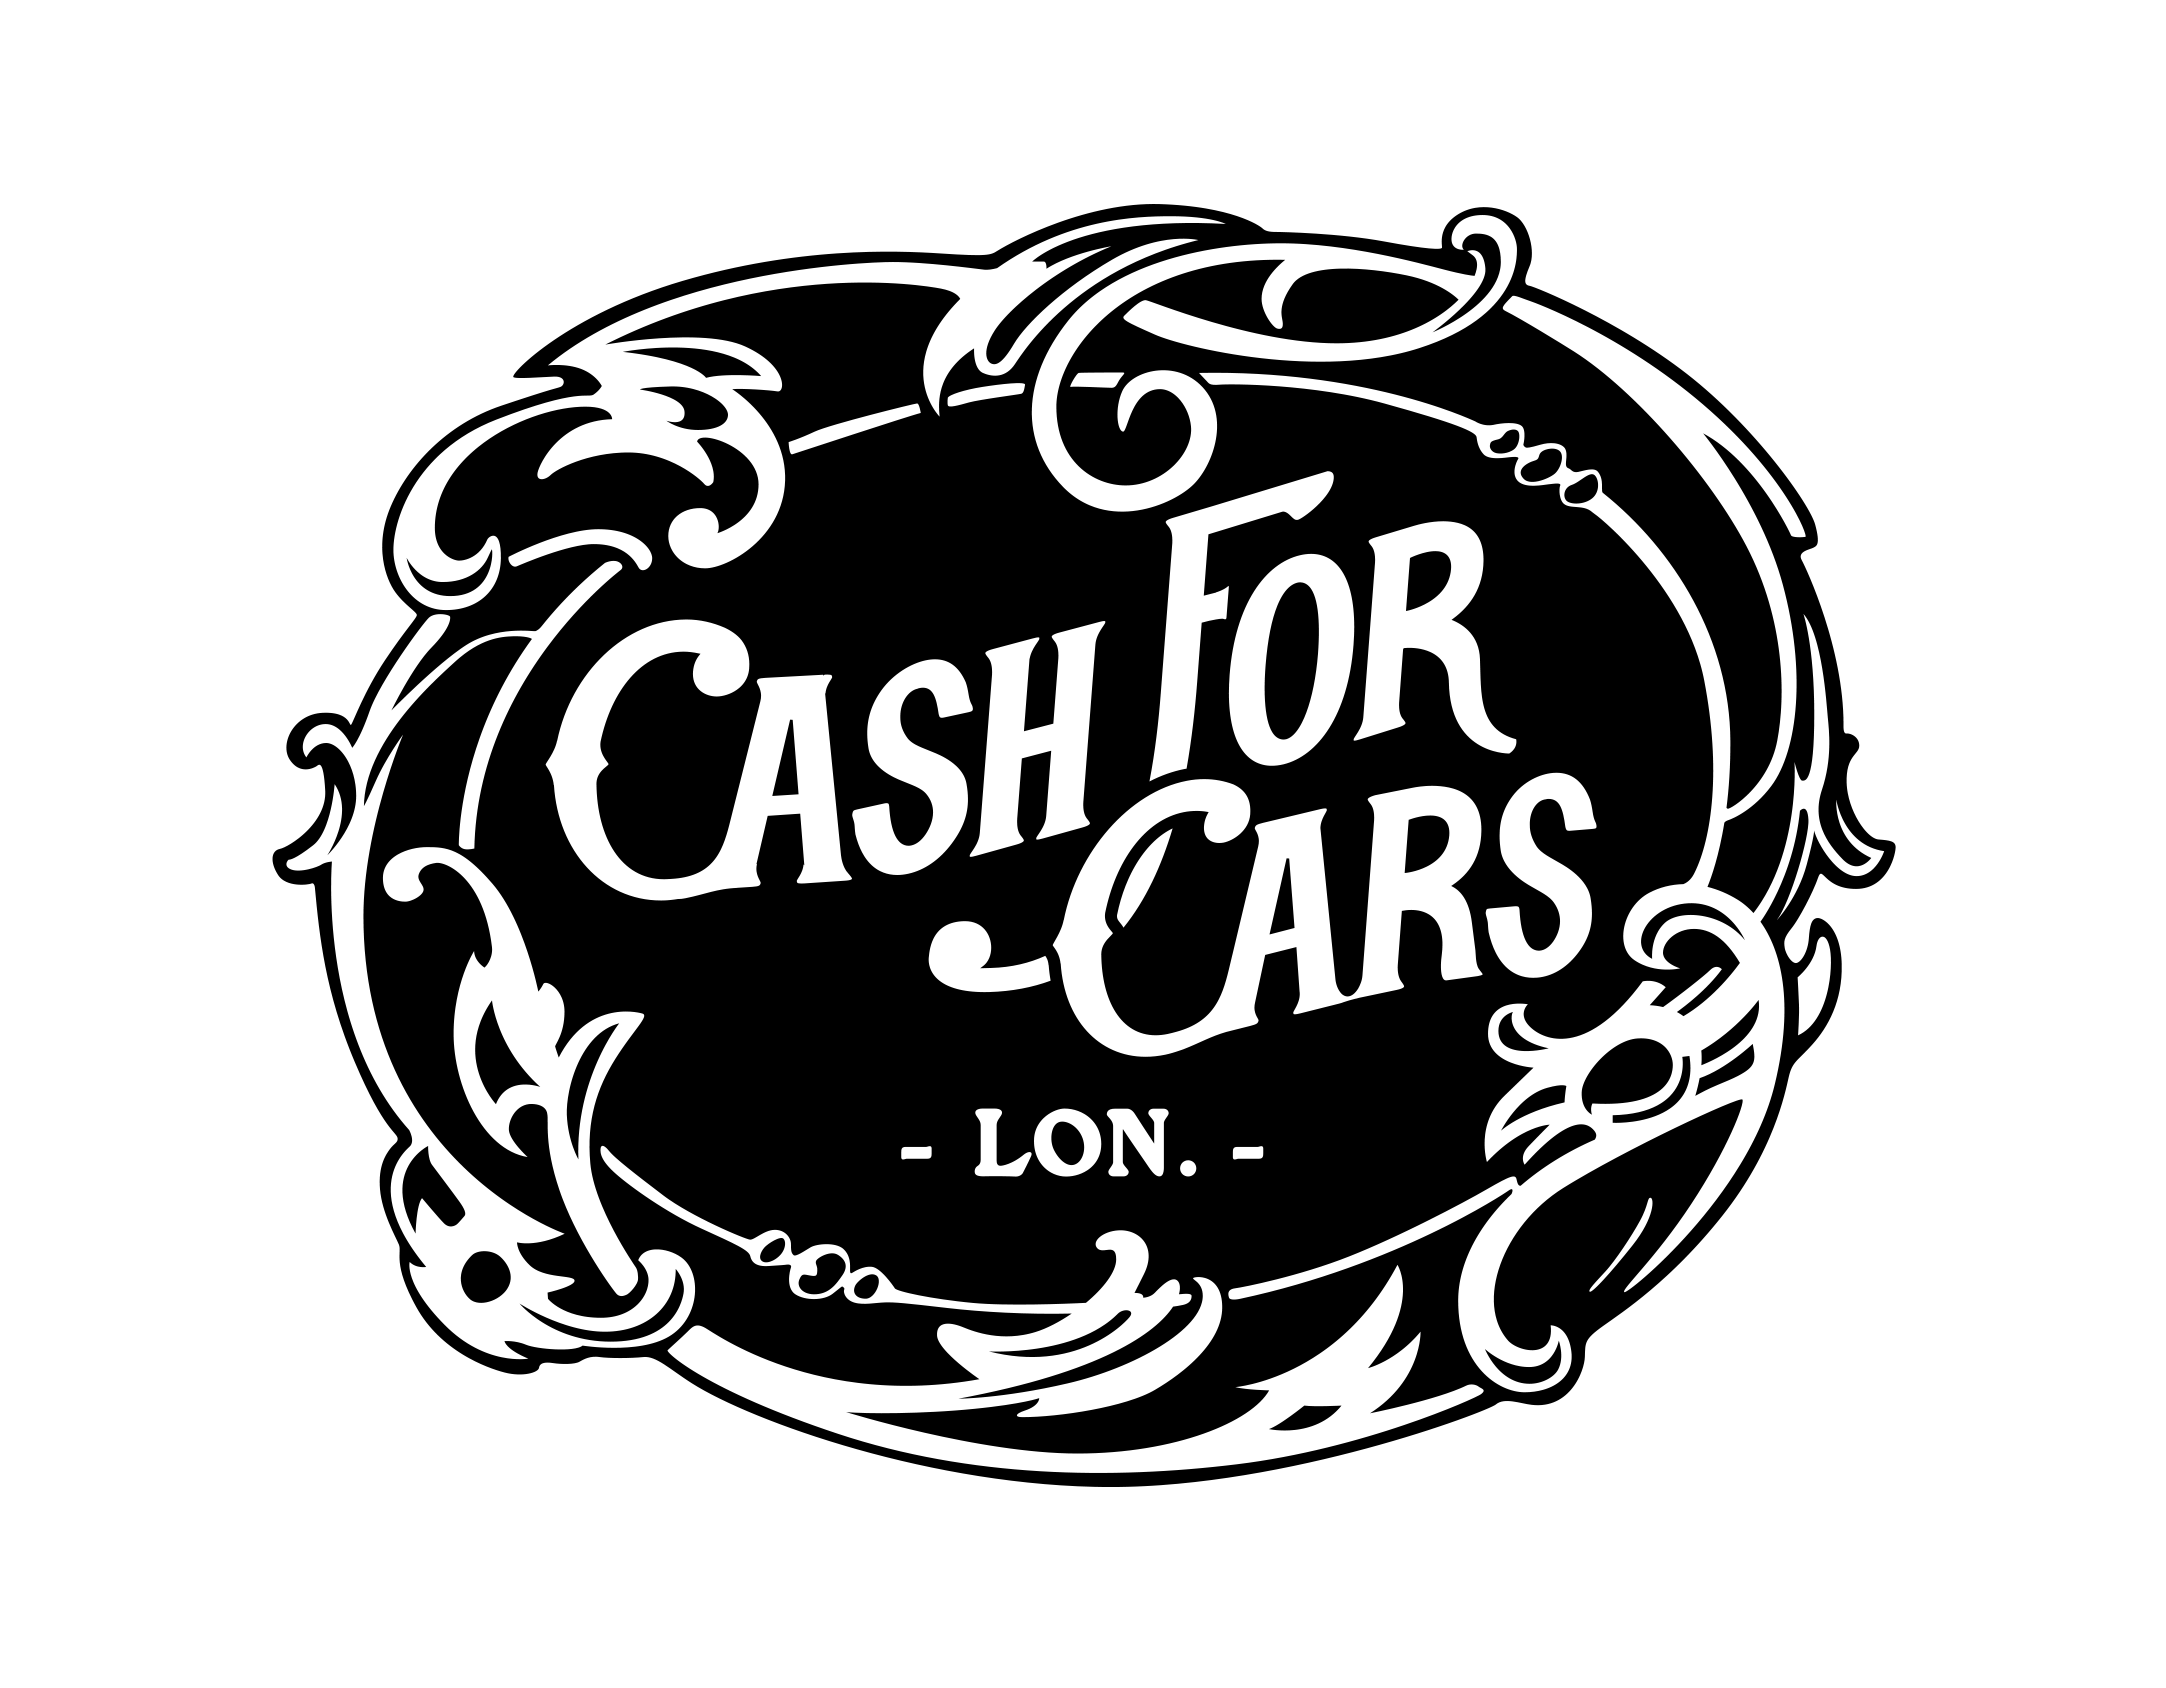 Cash For Cars - logo I did for a mate's band a very long ...